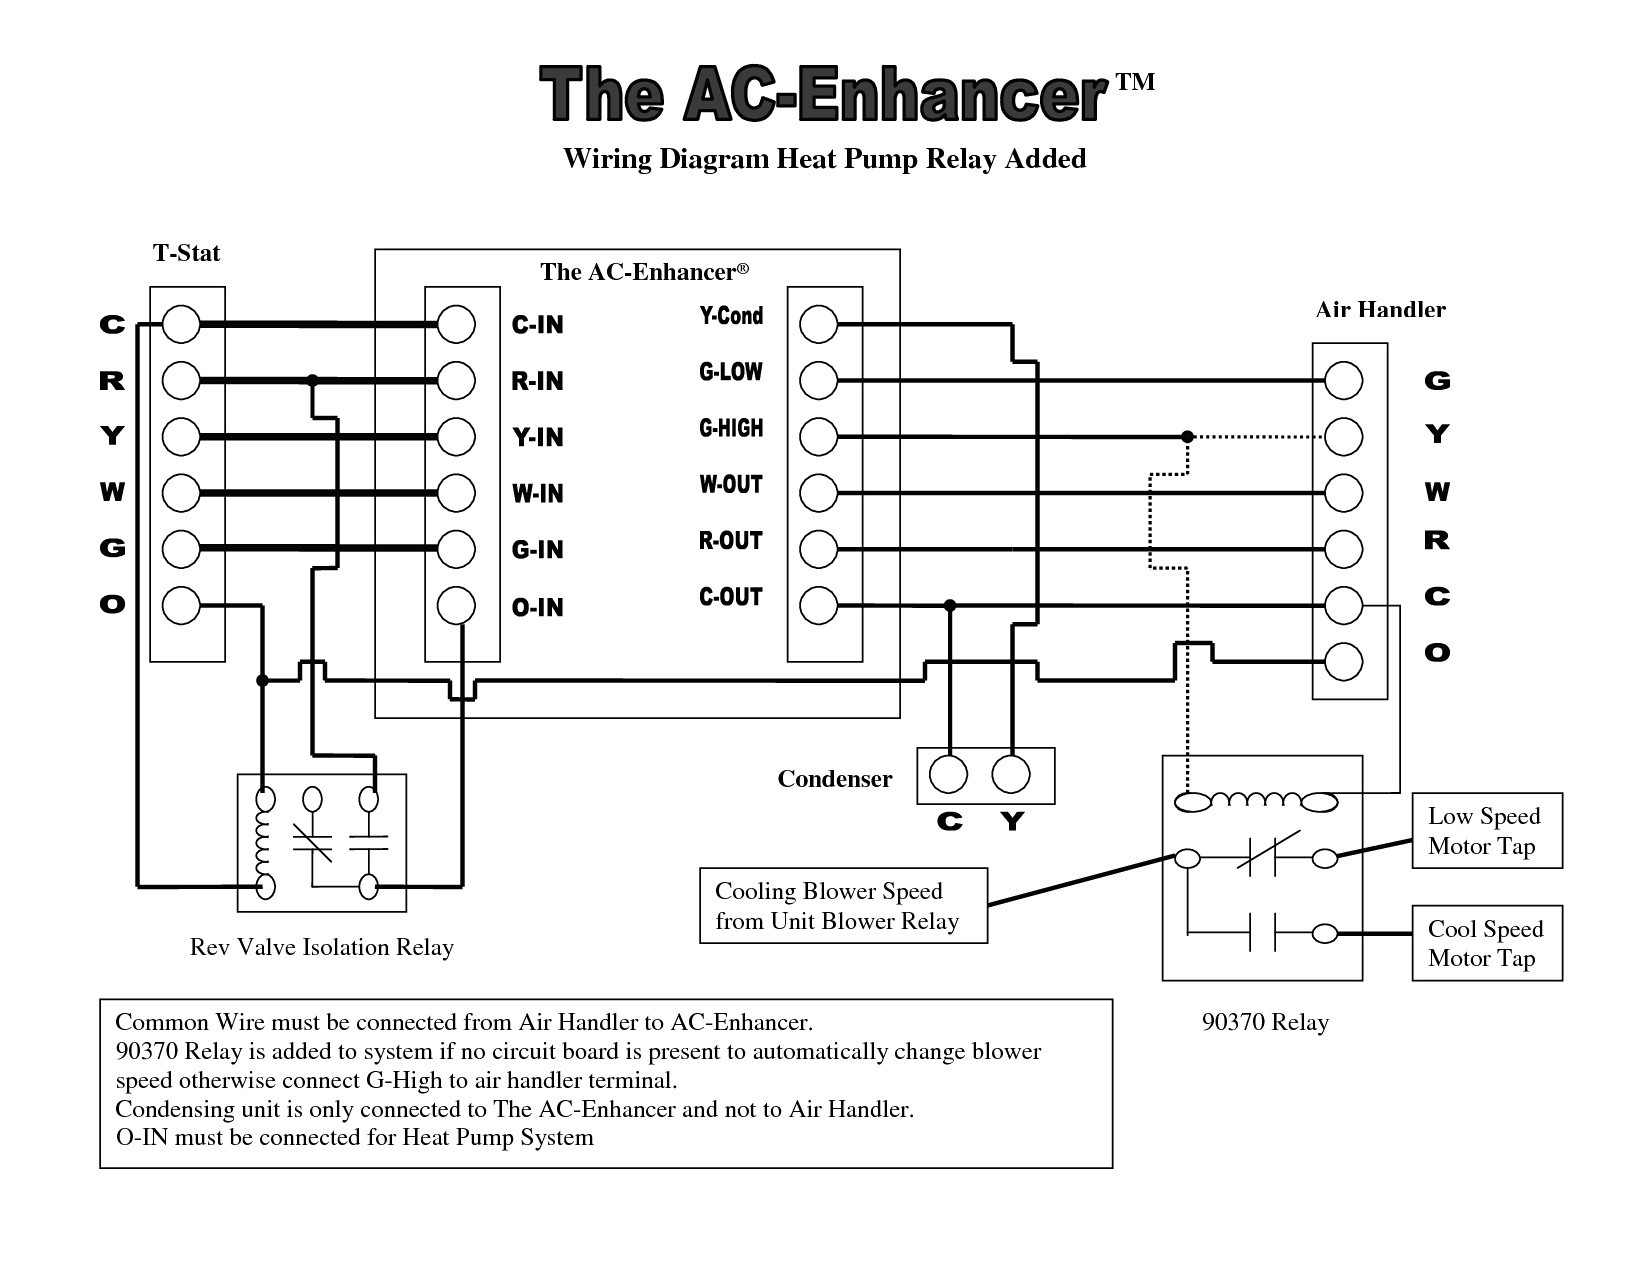 typical heat pump wiring diagram heil heat pump wiring diagram | free wiring diagram #7